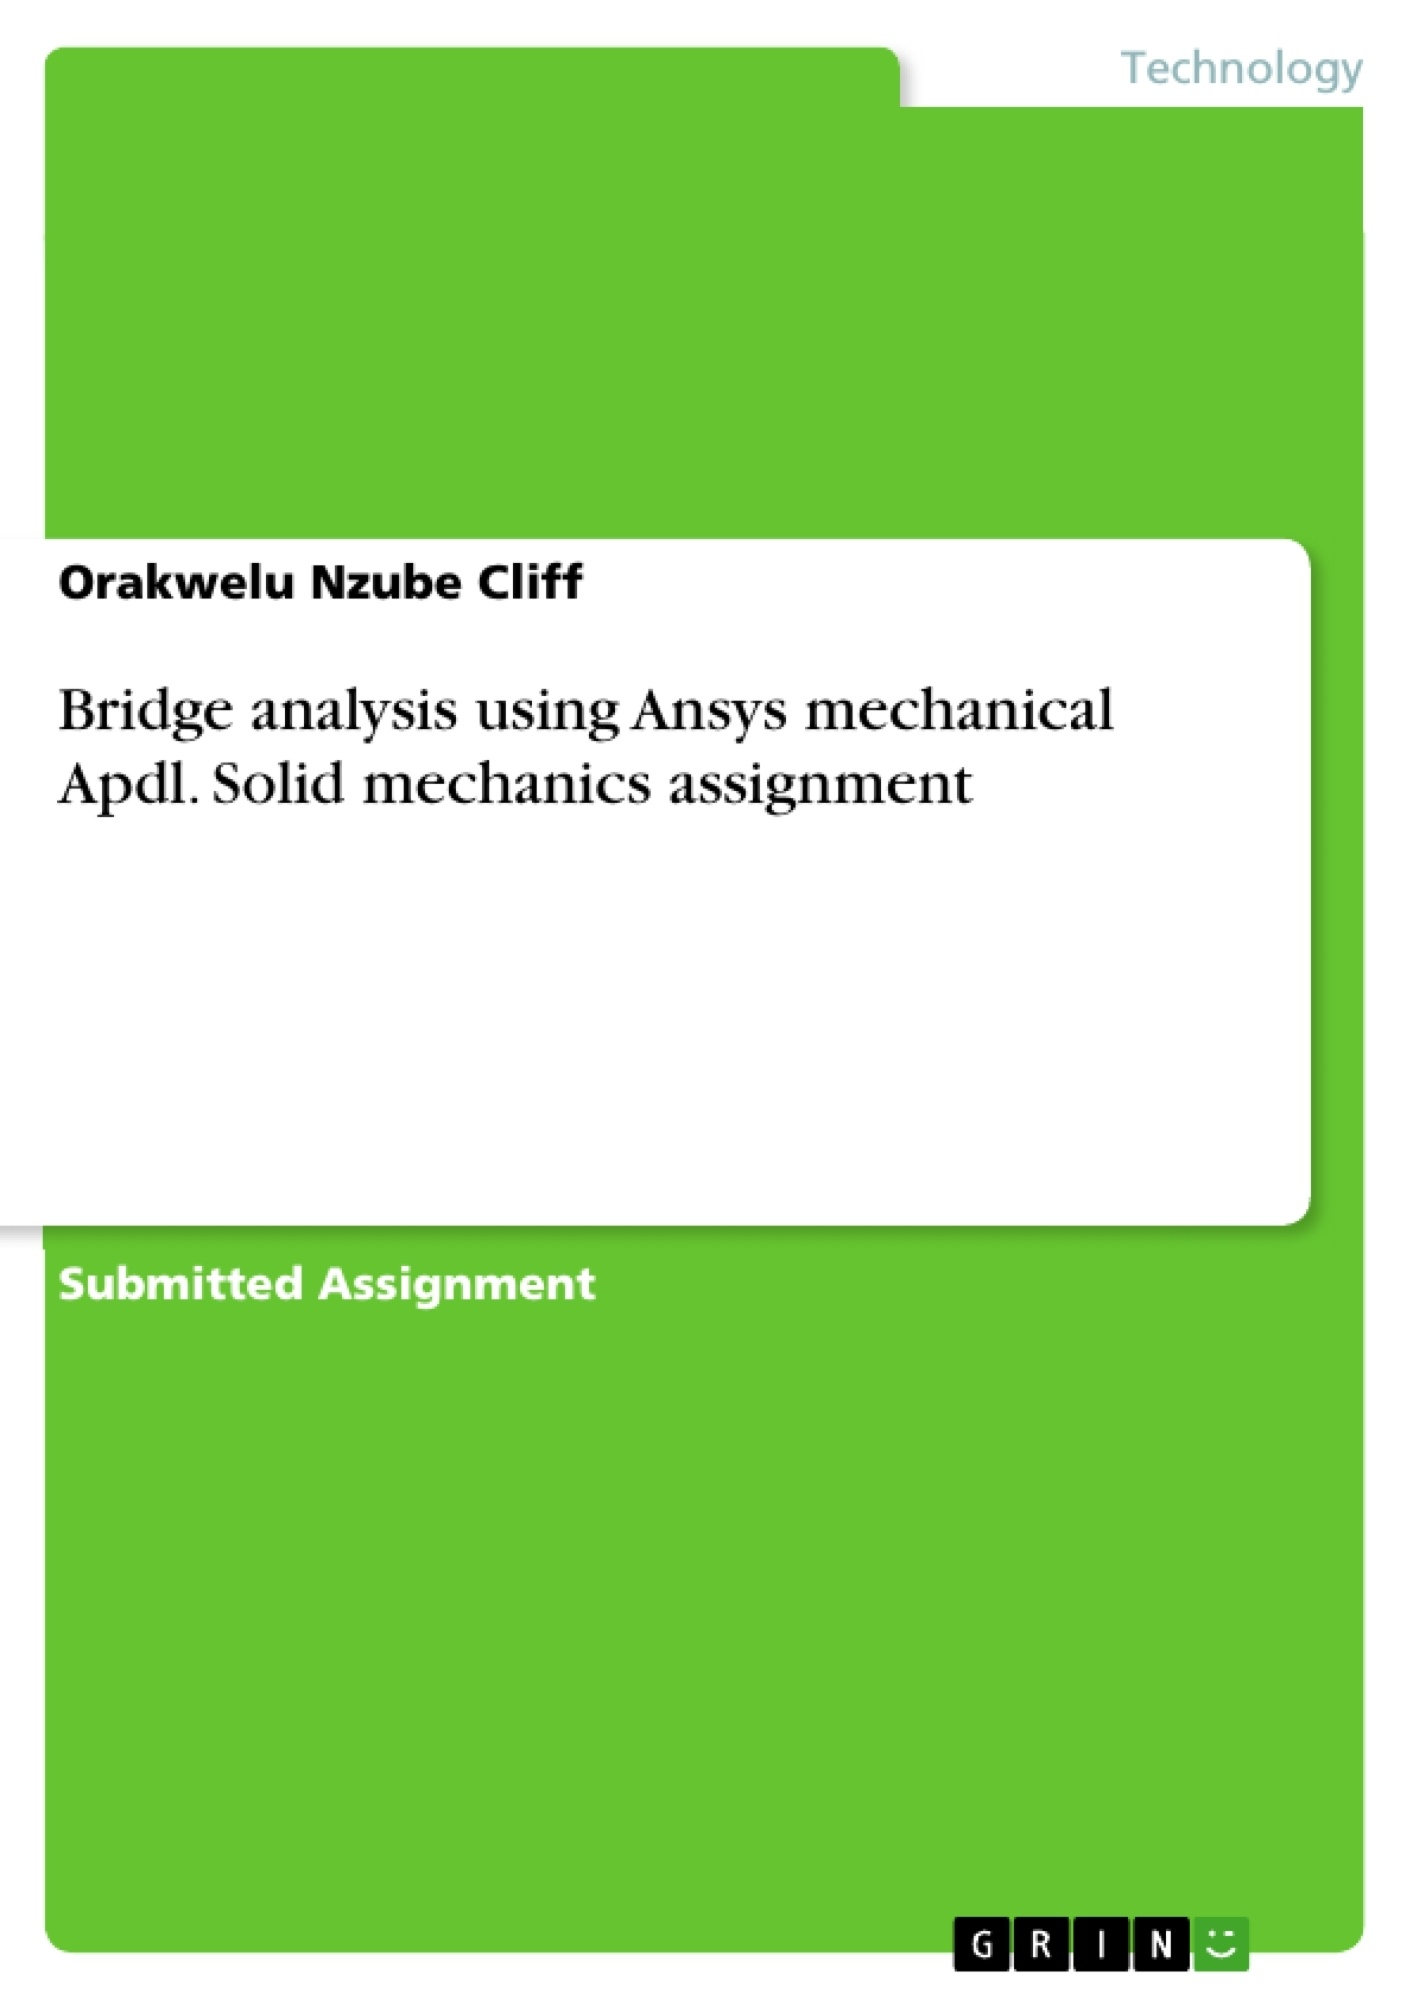 Title: Bridge analysis using Ansys mechanical Apdl. Solid mechanics assignment